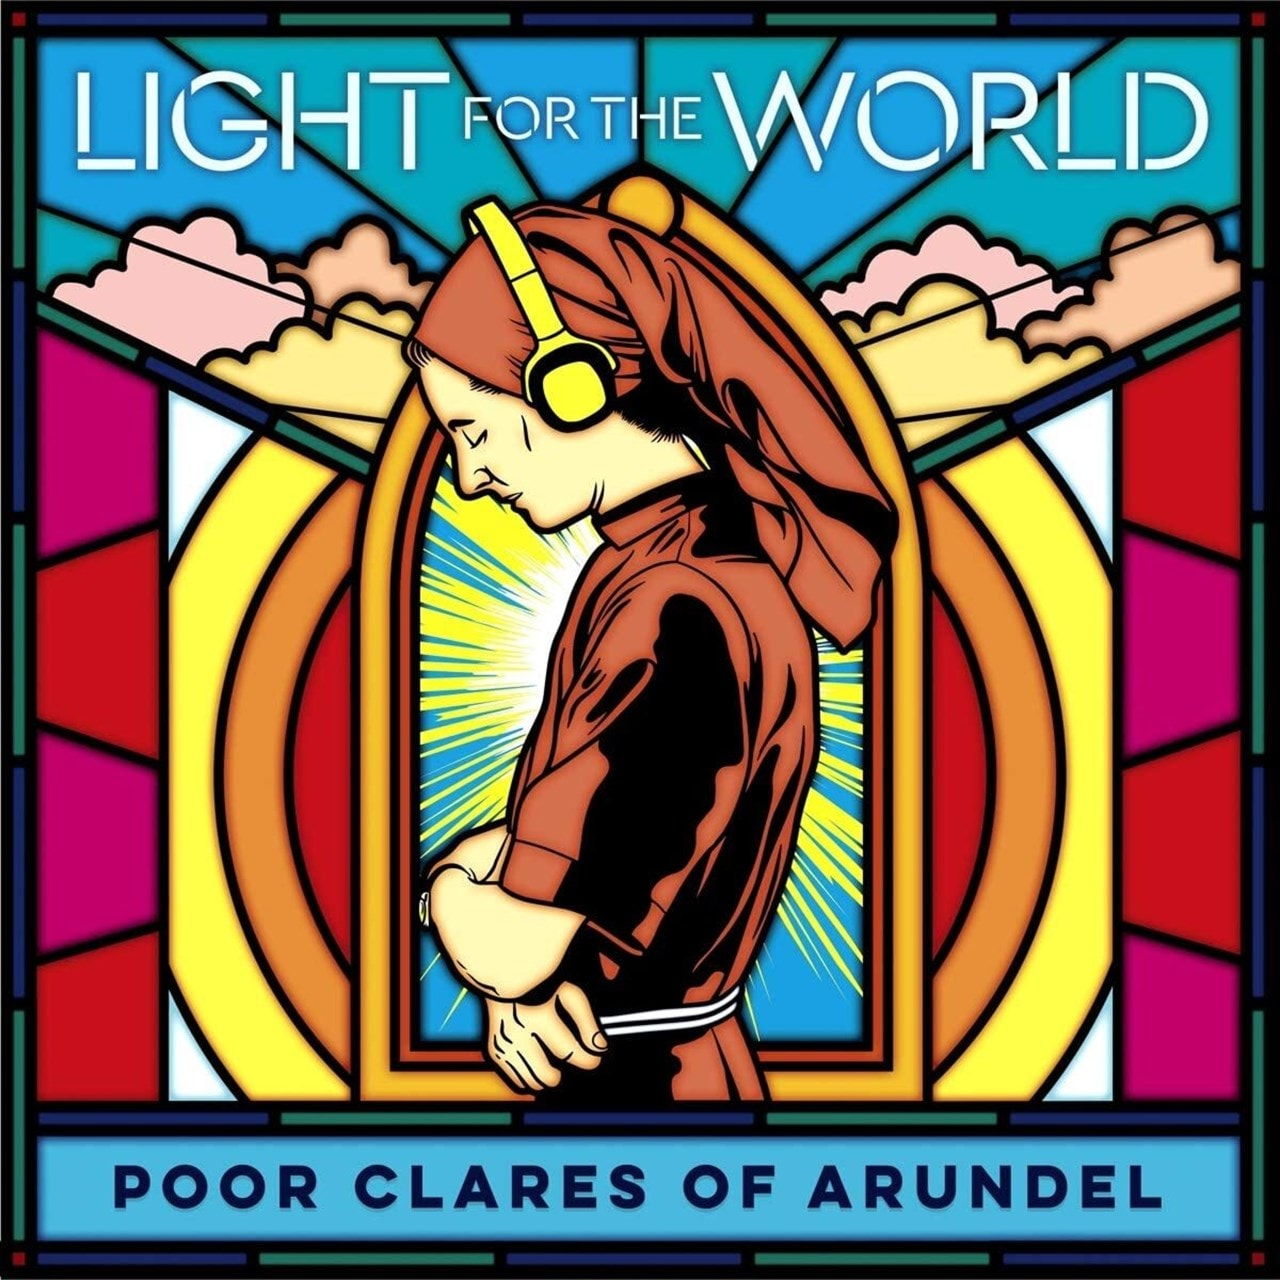 Poor Clares of Arundel: Light for the World - 1